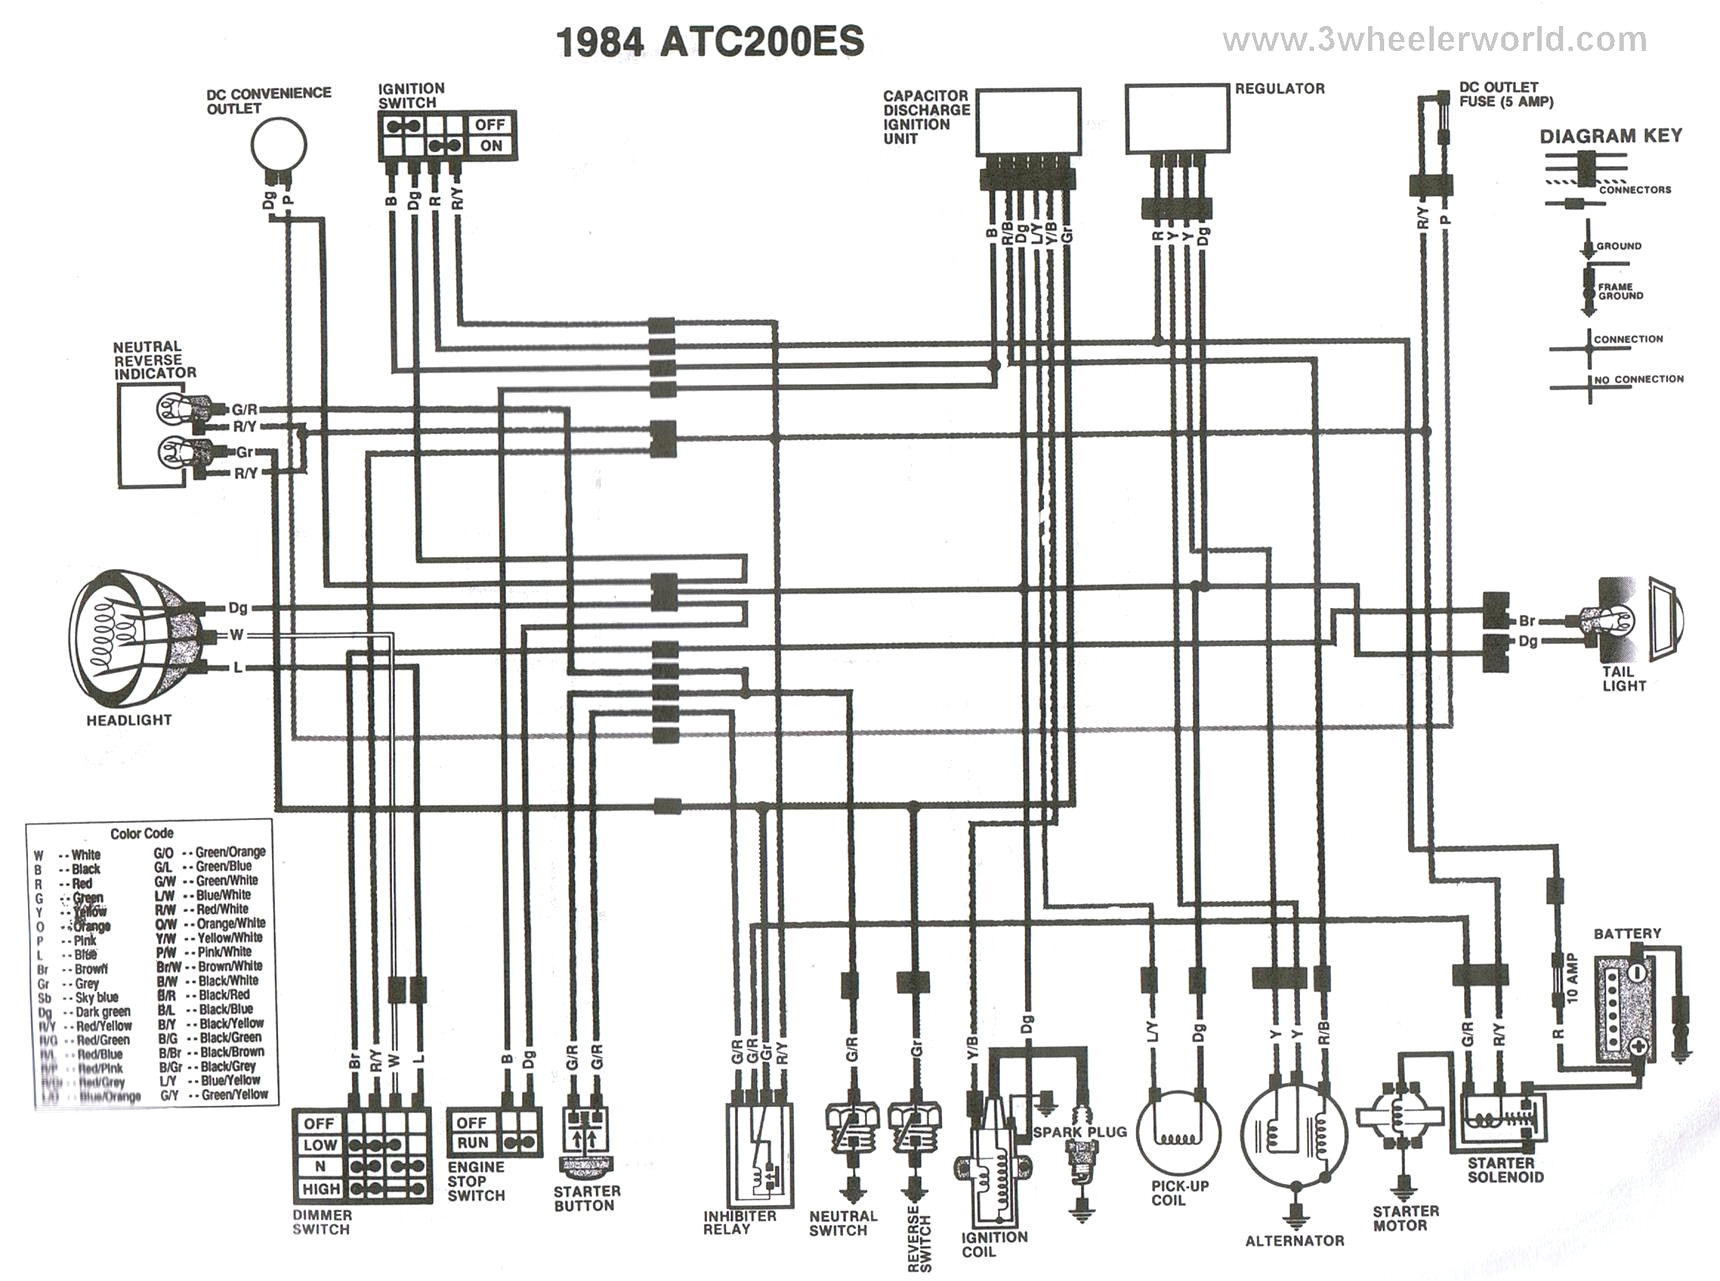 DIAGRAM] 1987 Honda Trx 250 Wiring Diagram FULL Version HD Quality Wiring  Diagram - PDFSCHEMATICDIAGRAM.LOCANDABAGLIONI.ITpdfschematicdiagram.locandabaglioni.it